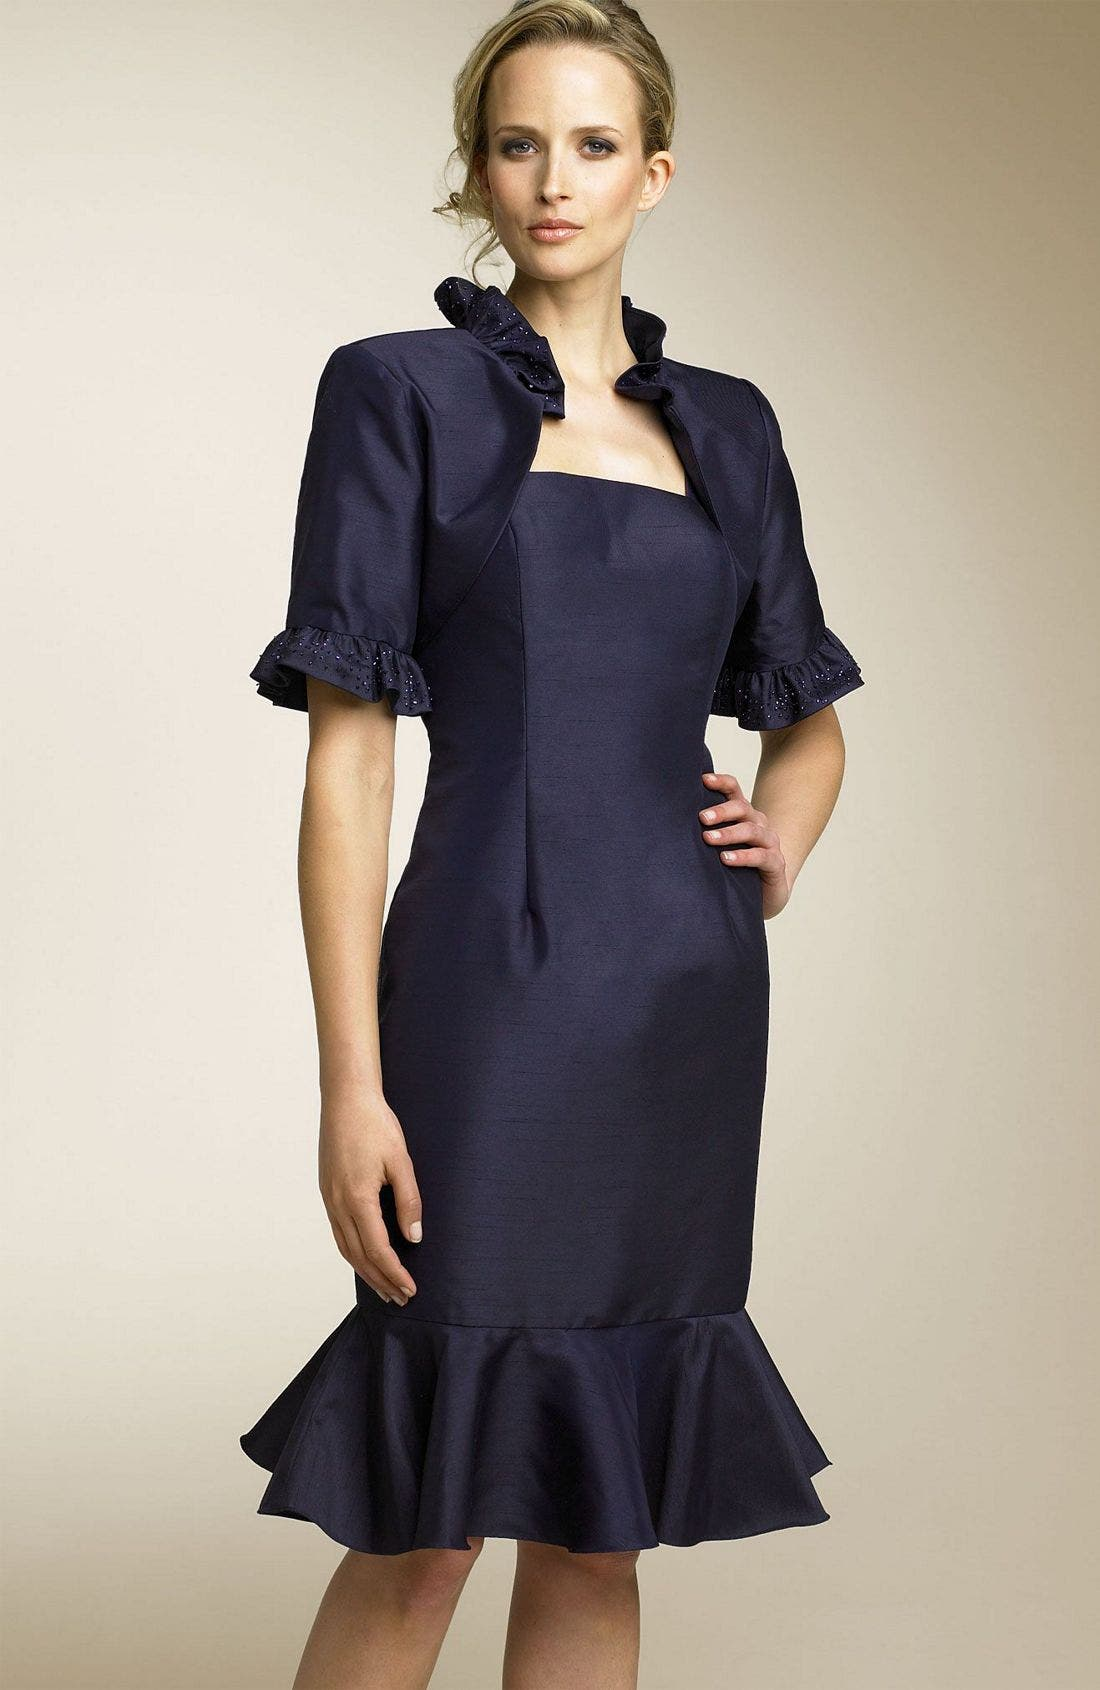 Alternate Image 1 Selected - Sean Collection Ruffle Dress & Jacket